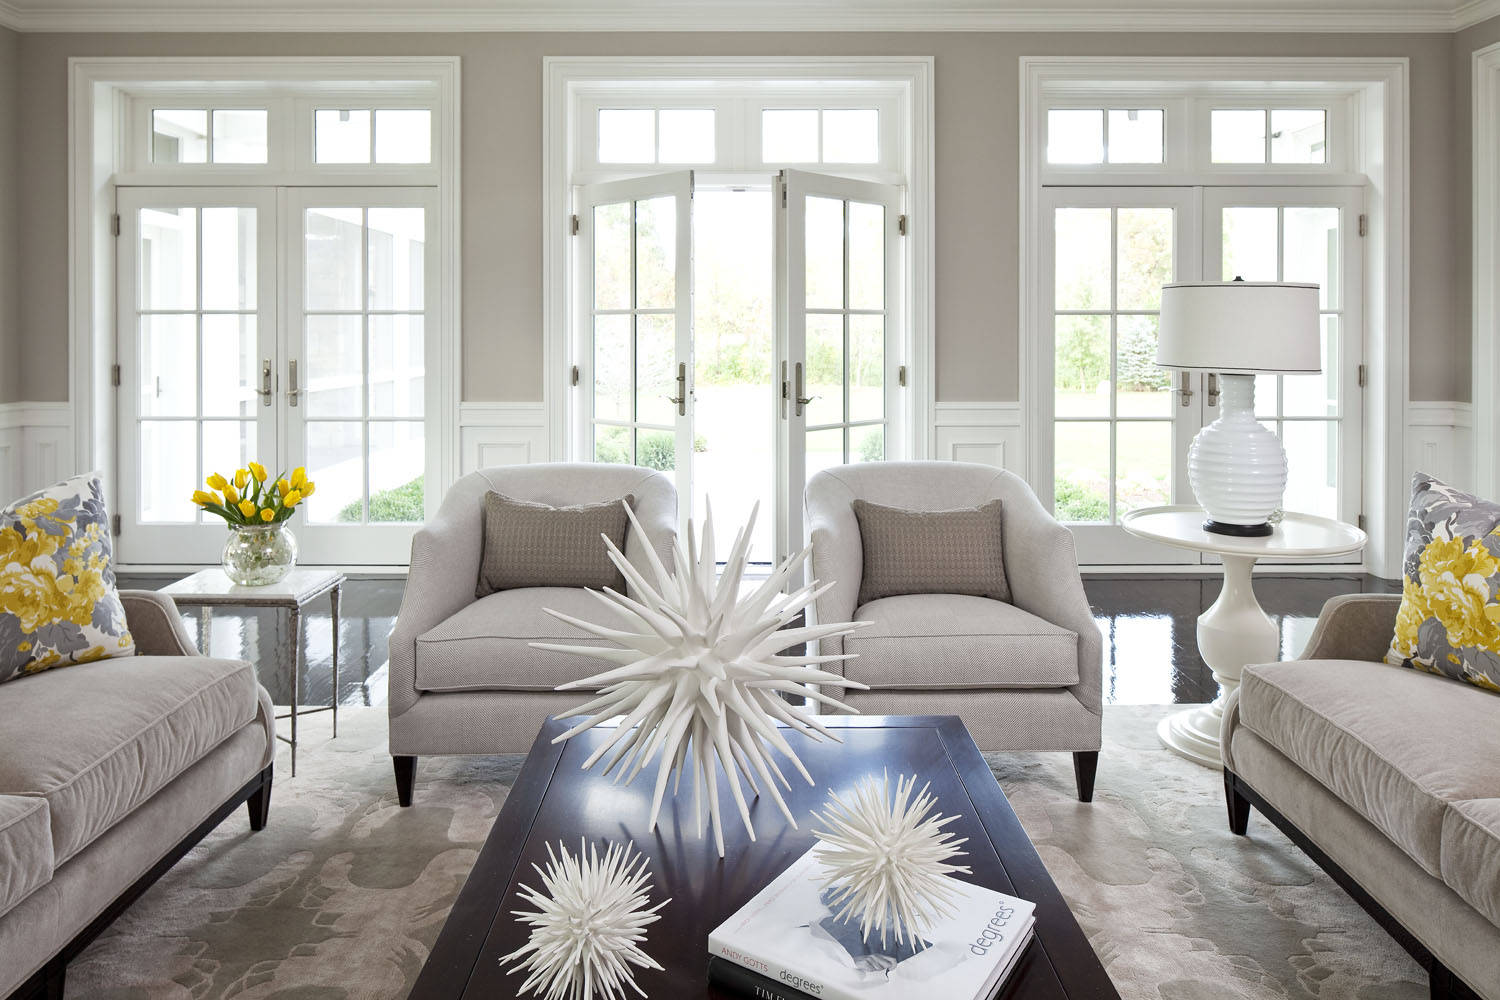 Taupe Ample Seating